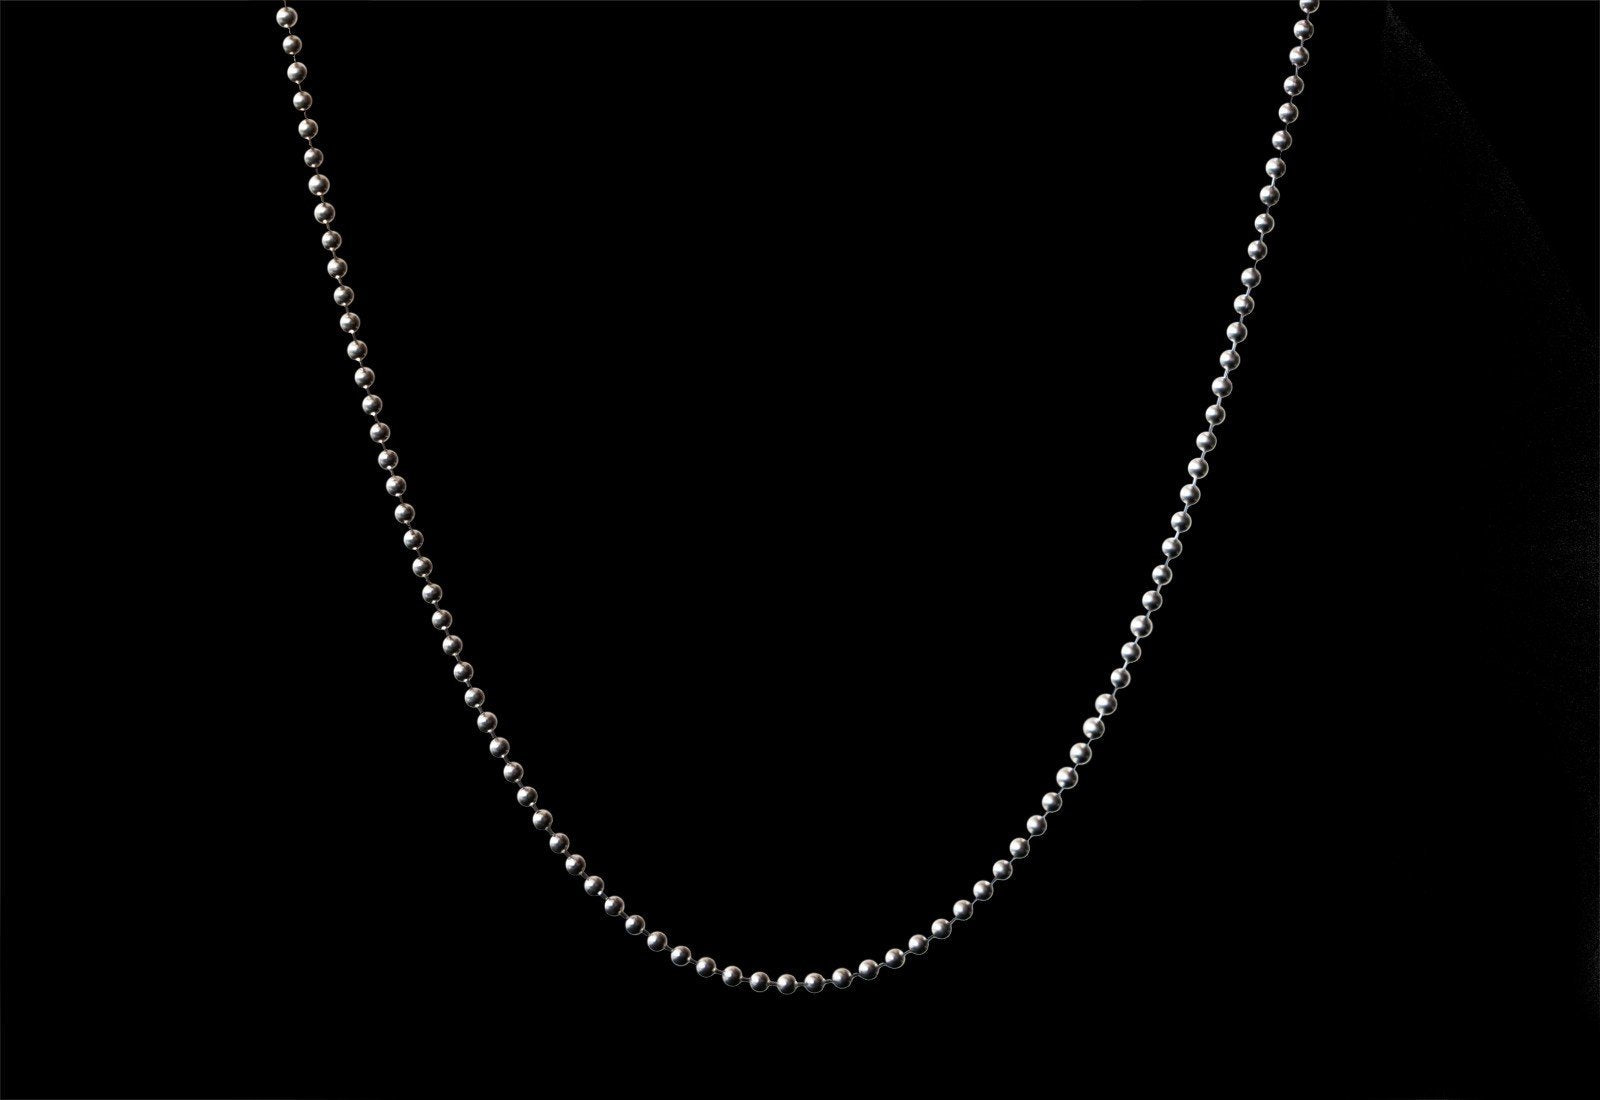 POLISHED SILVER BALL CHAIN ESPECIAL